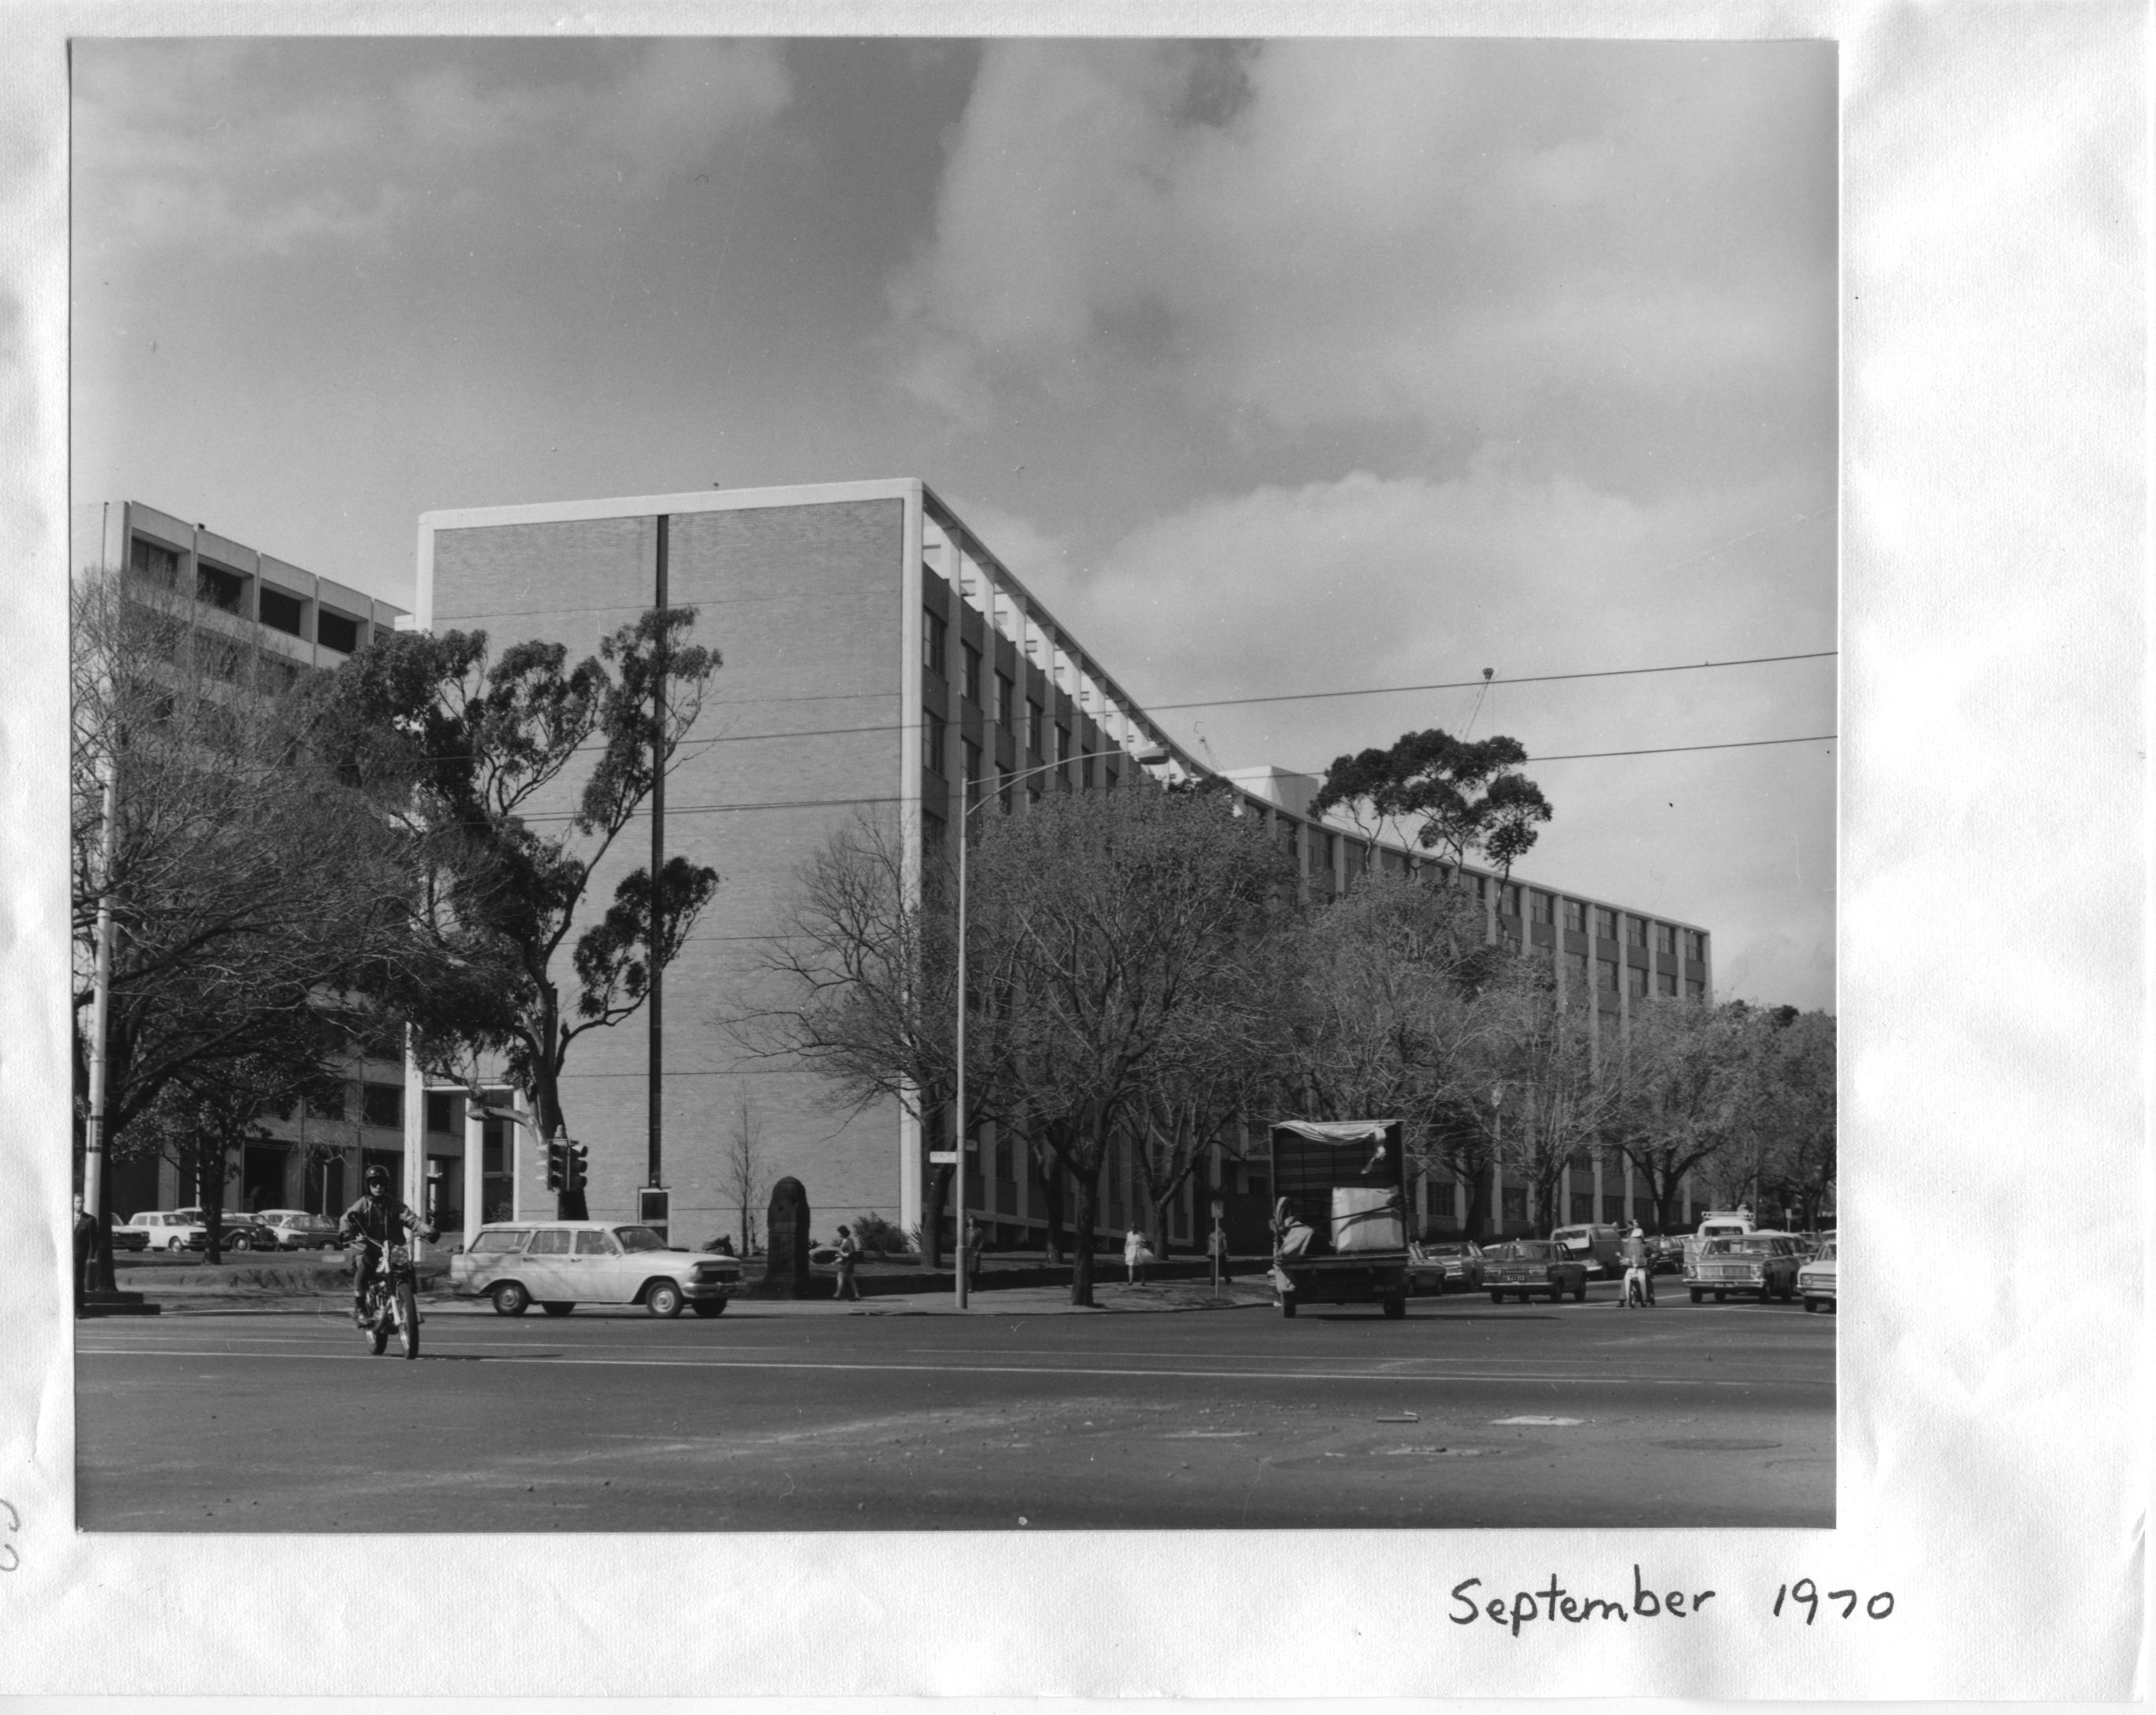 The main Medical building from the Royal Parade and Grattan Street intersection, 1970